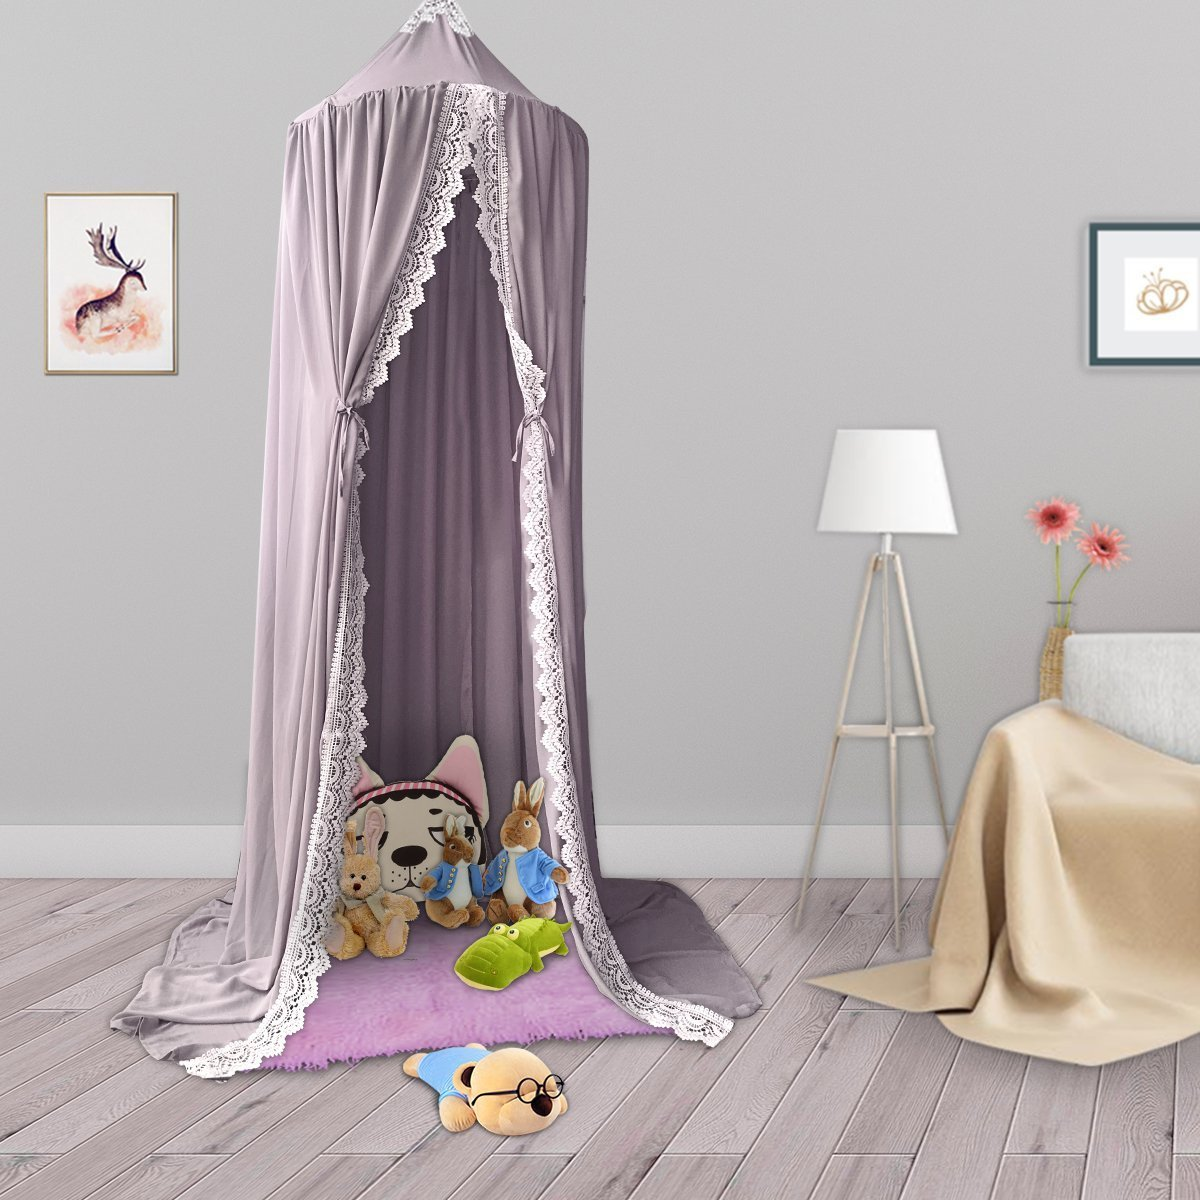 Kids Cotton Bed Canopy, Cotton Mosquito Net, Kids Princess Play Tents, Room Decoration for Baby (Grey)